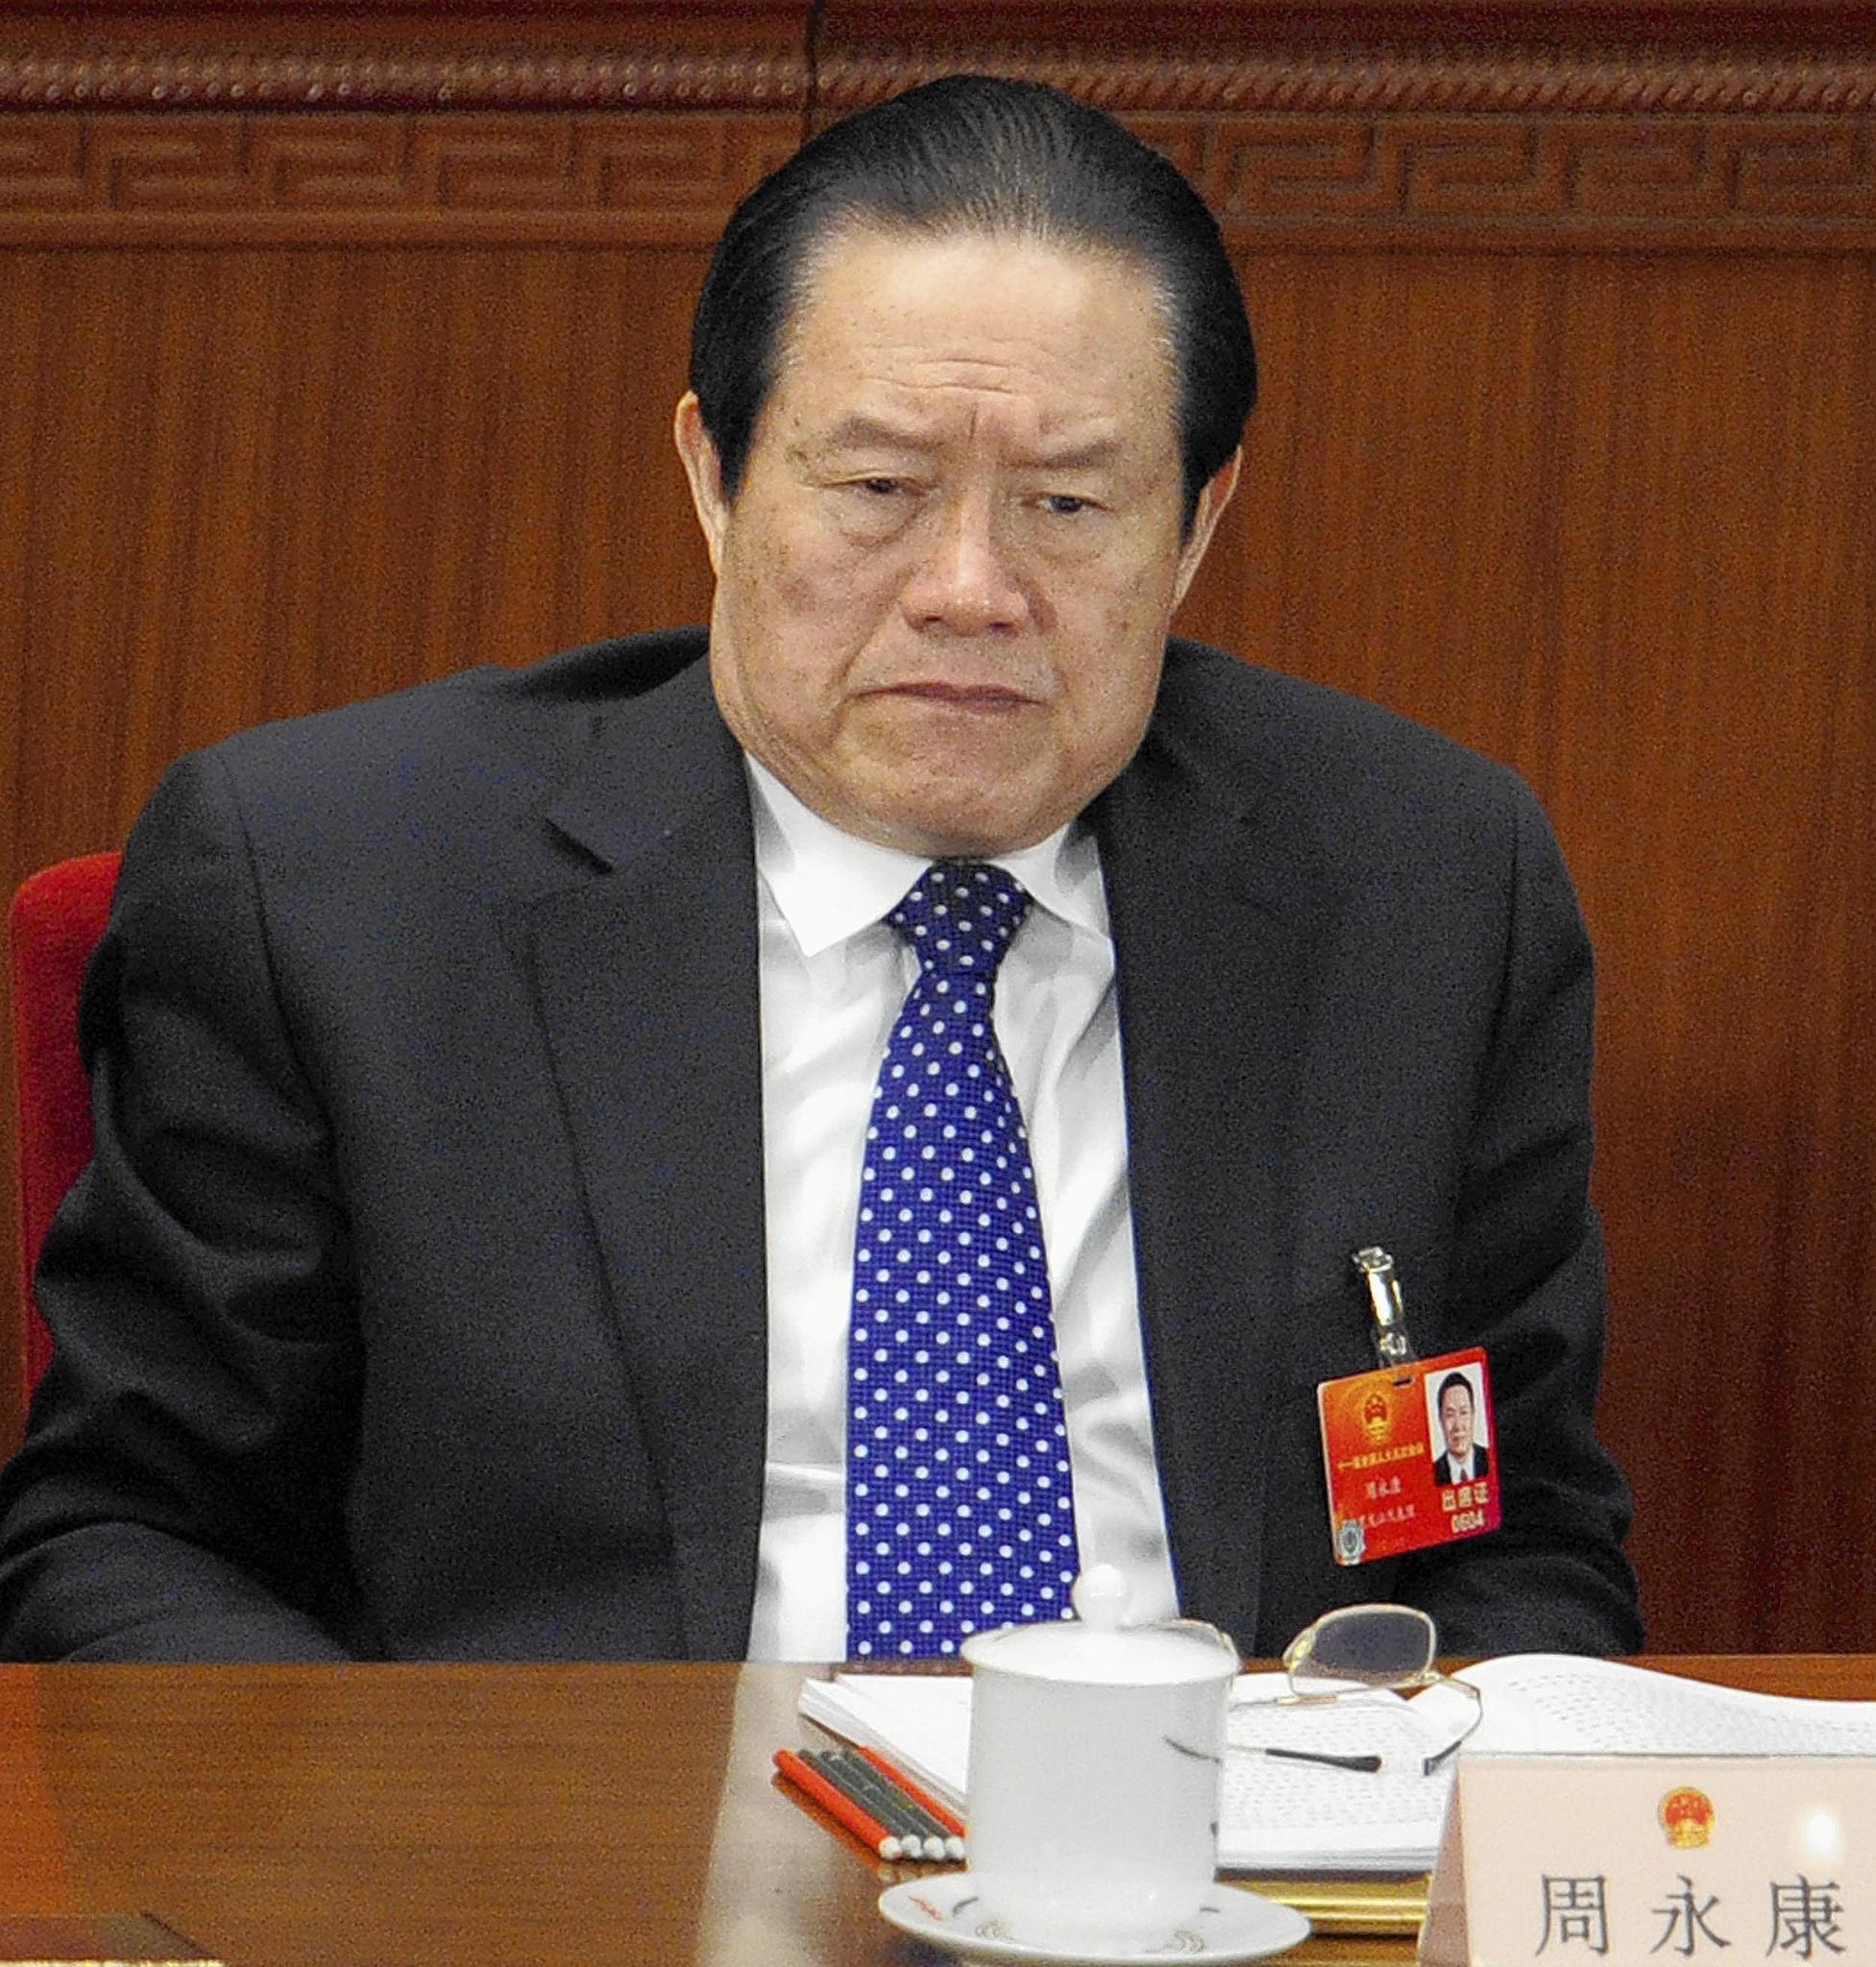 Zhou Yongkang, a former member of the Politburo Standing Committee, the highest body in the Chinese Communist Party, is believed to be the subject of a corruption probe. But news accounts in China have studiously avoided mentioning his name.